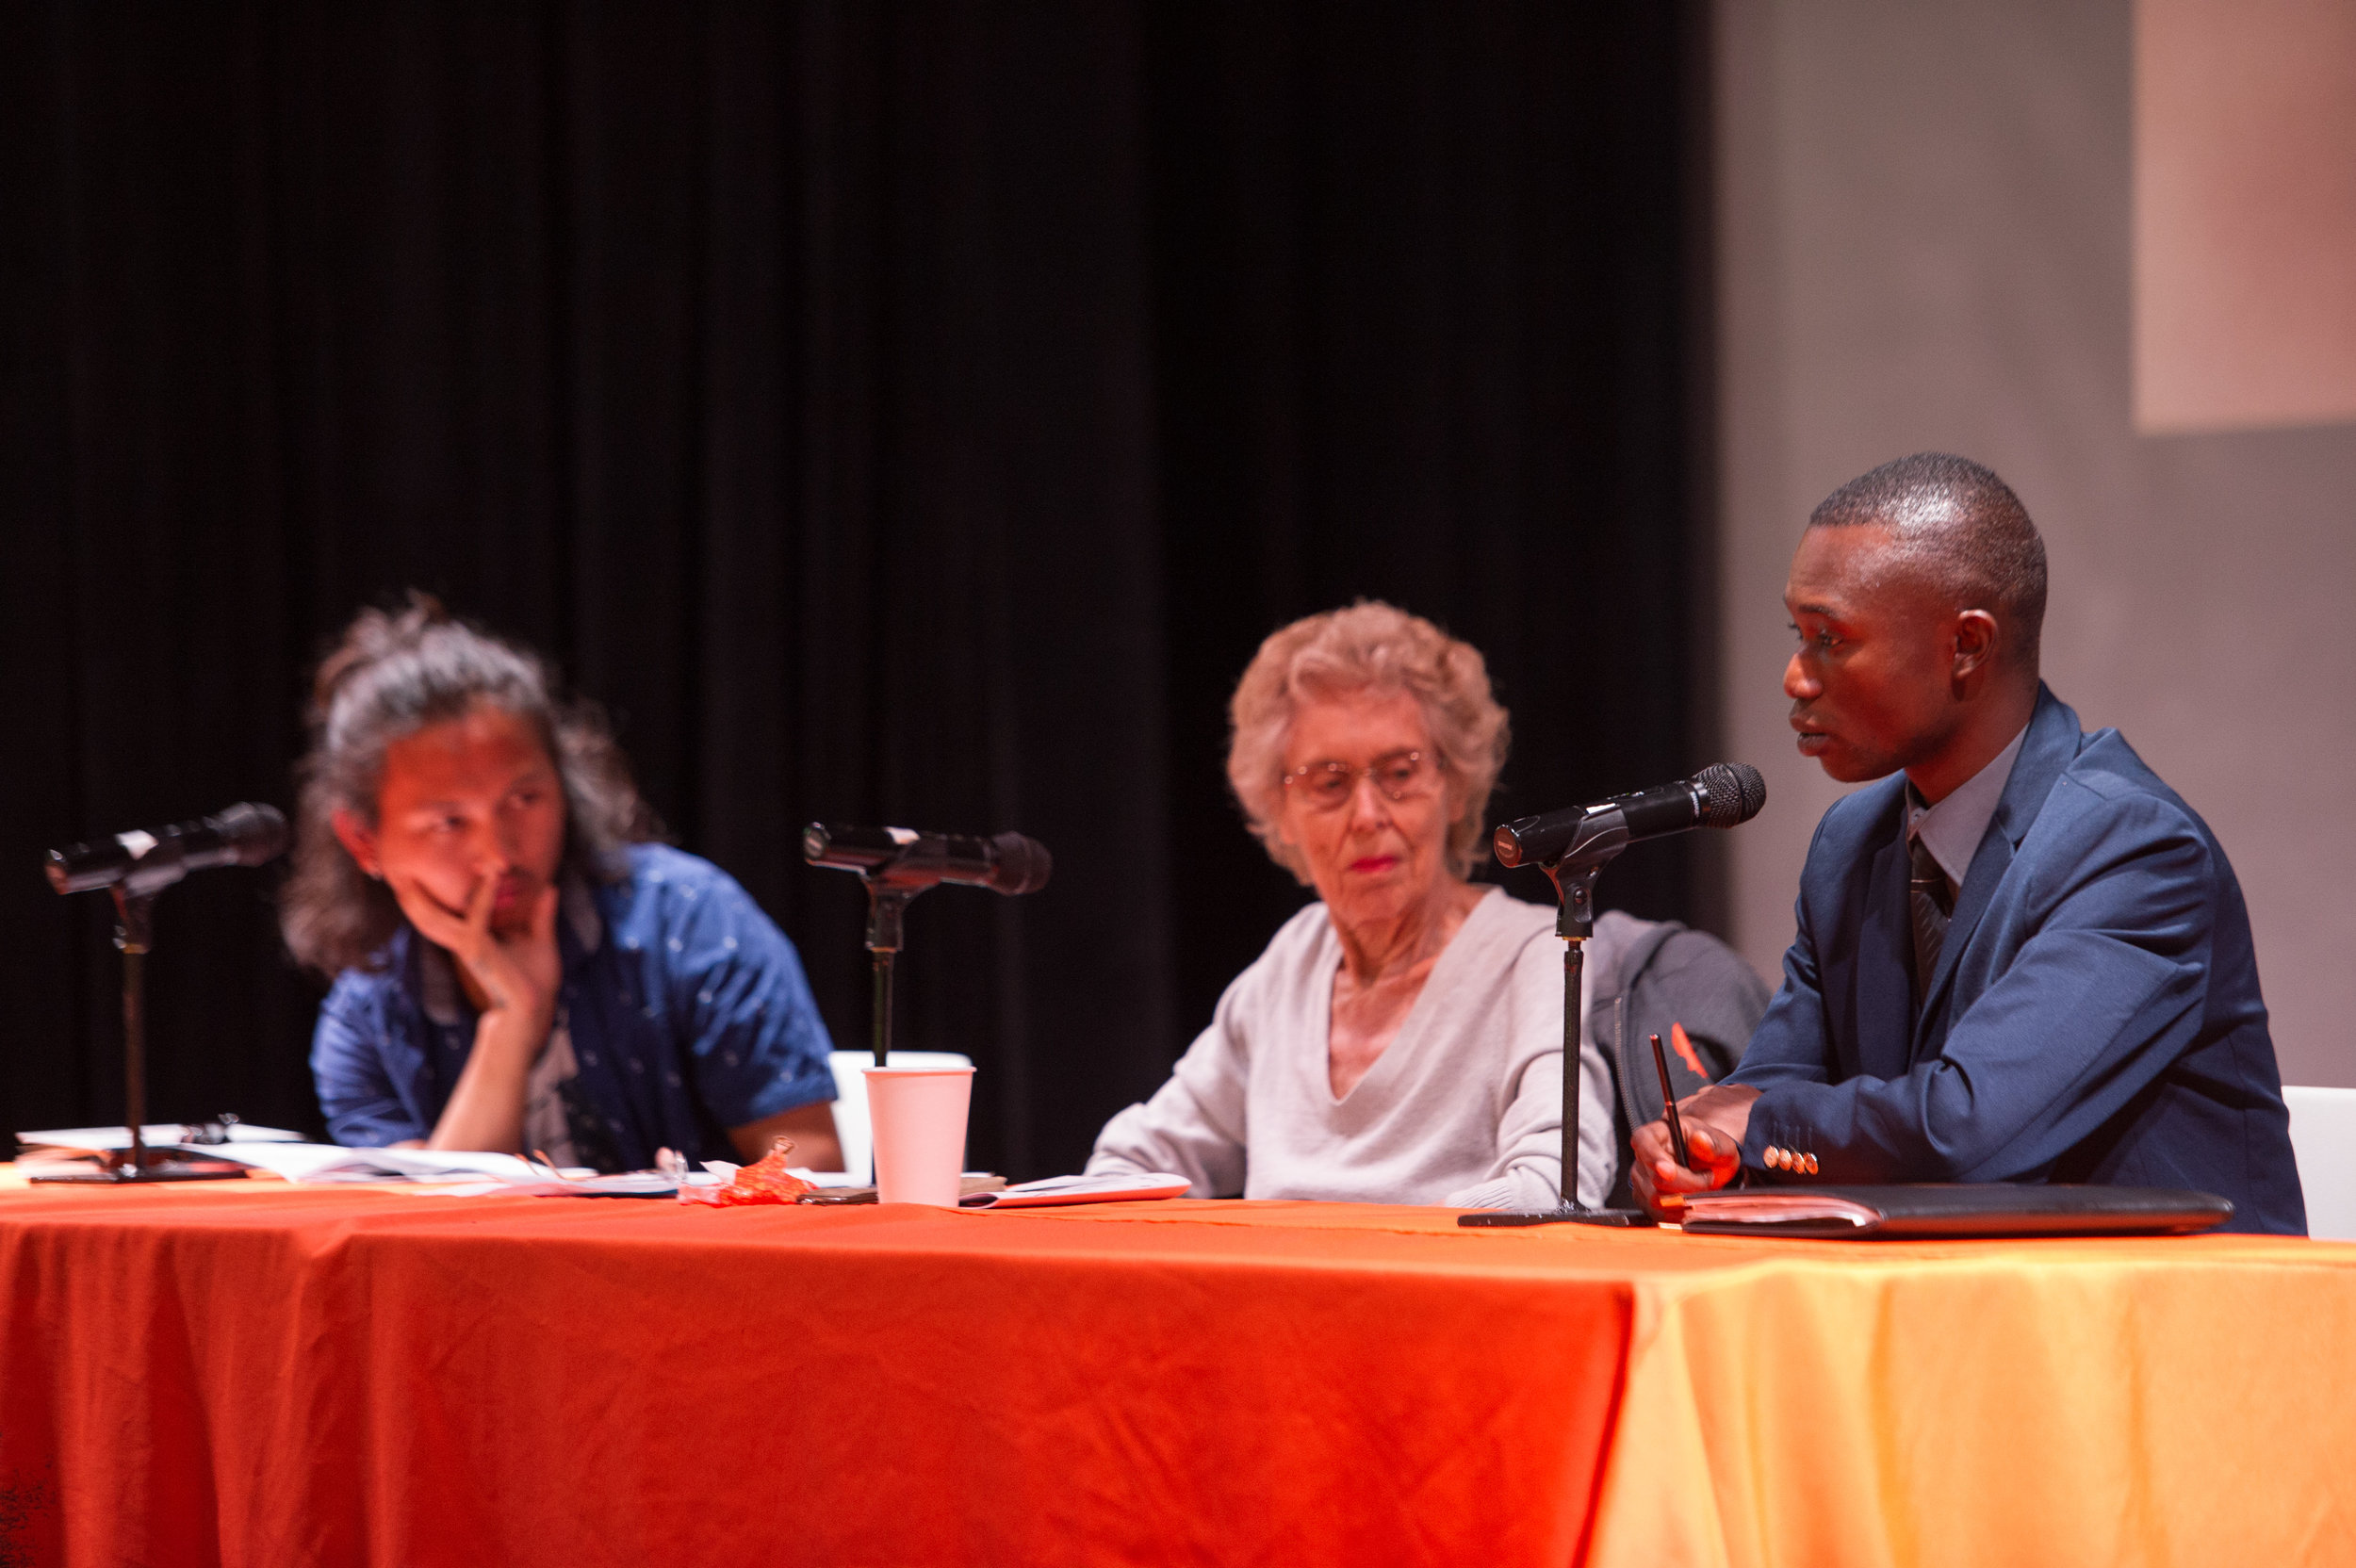 Survivor Panel: (Left to Right) Deo Rai (Bhutan/Nepal), Sophia Veffer (Wester Europe), Salumu Honoré (DR Congo)